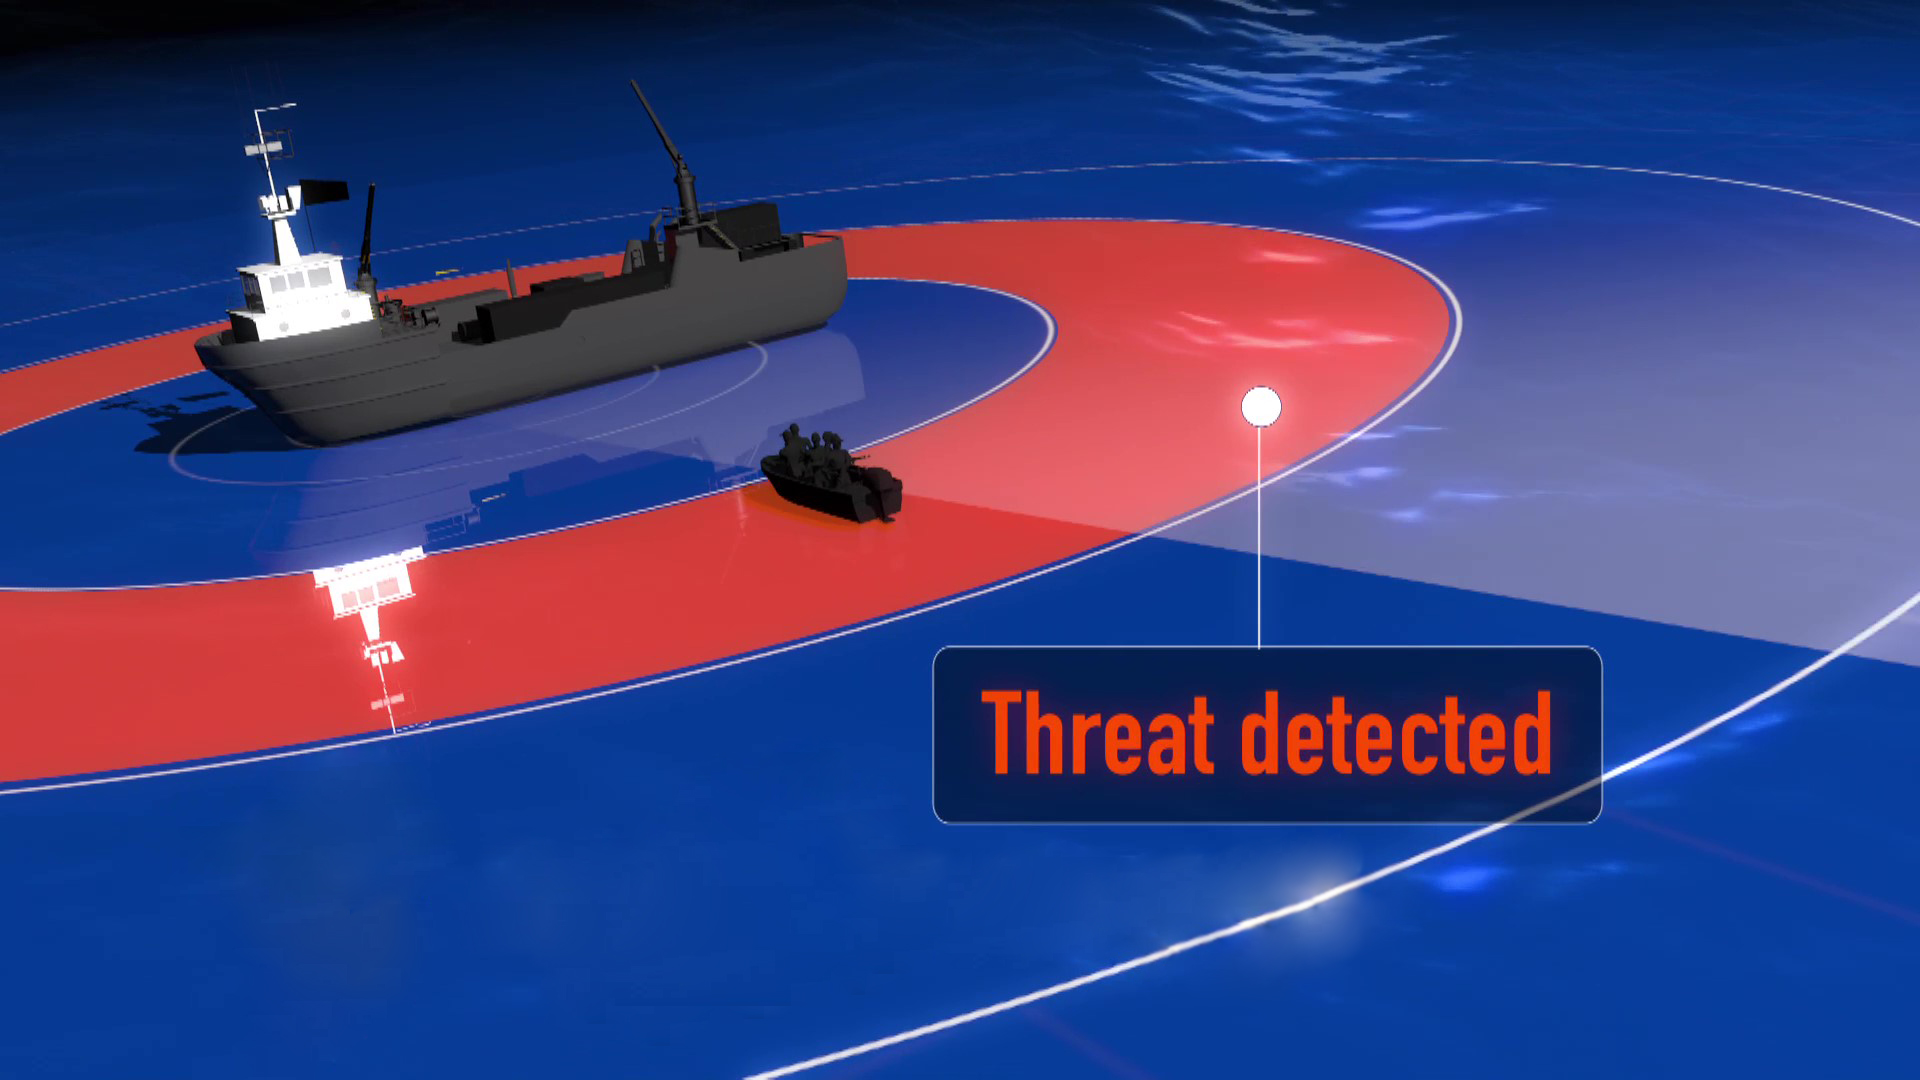 Threat detected